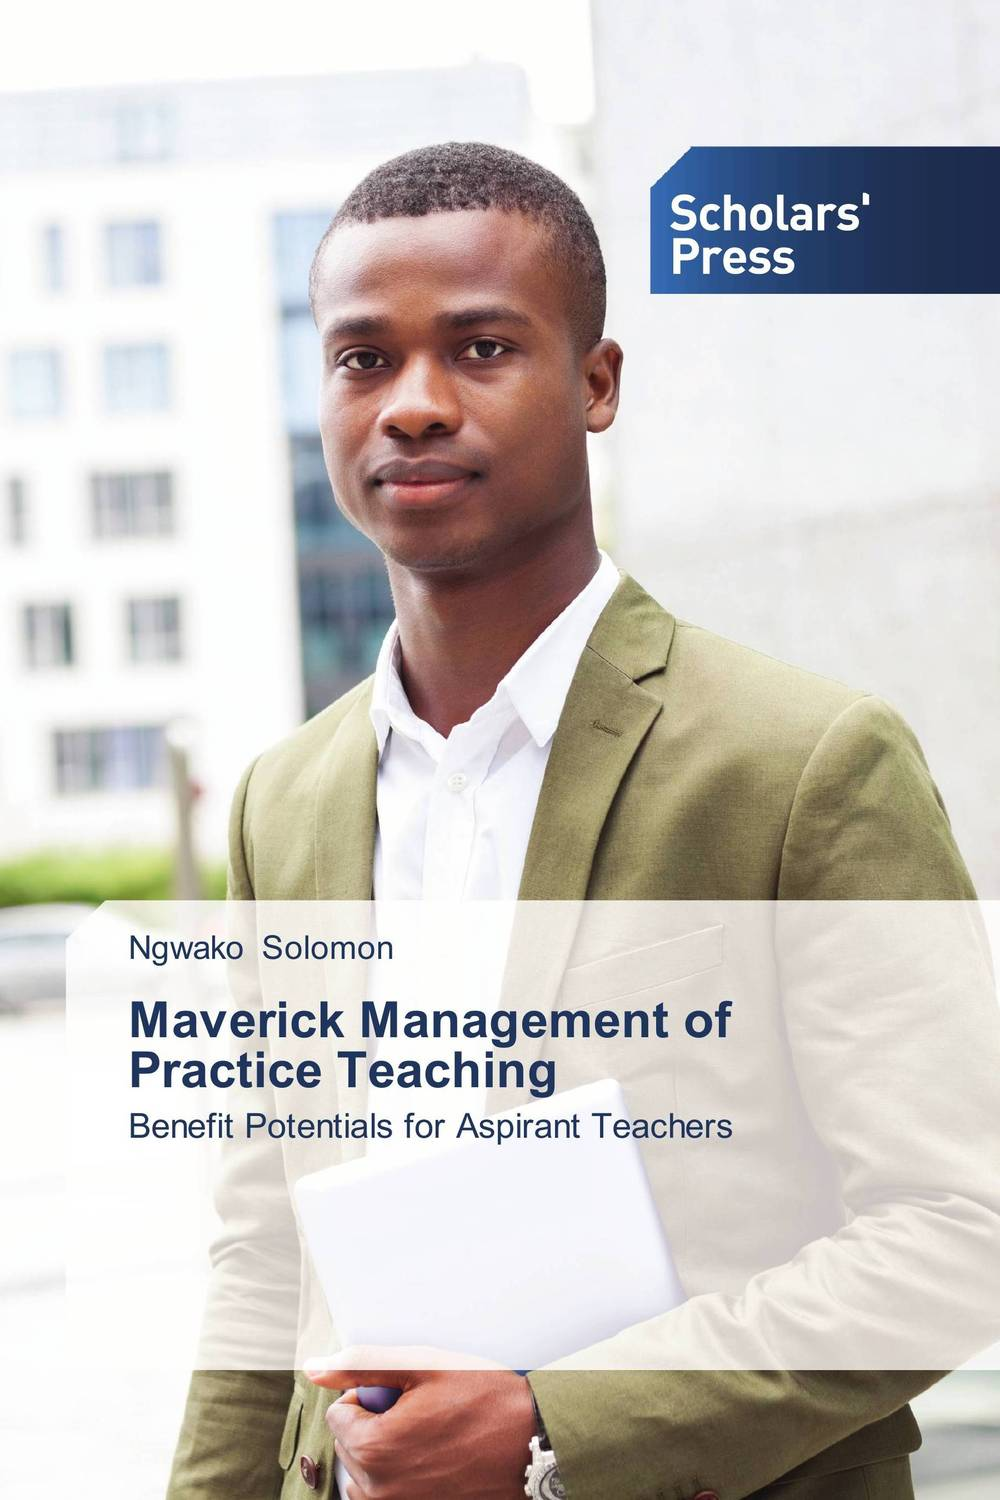 Maverick Management of Practice Teaching